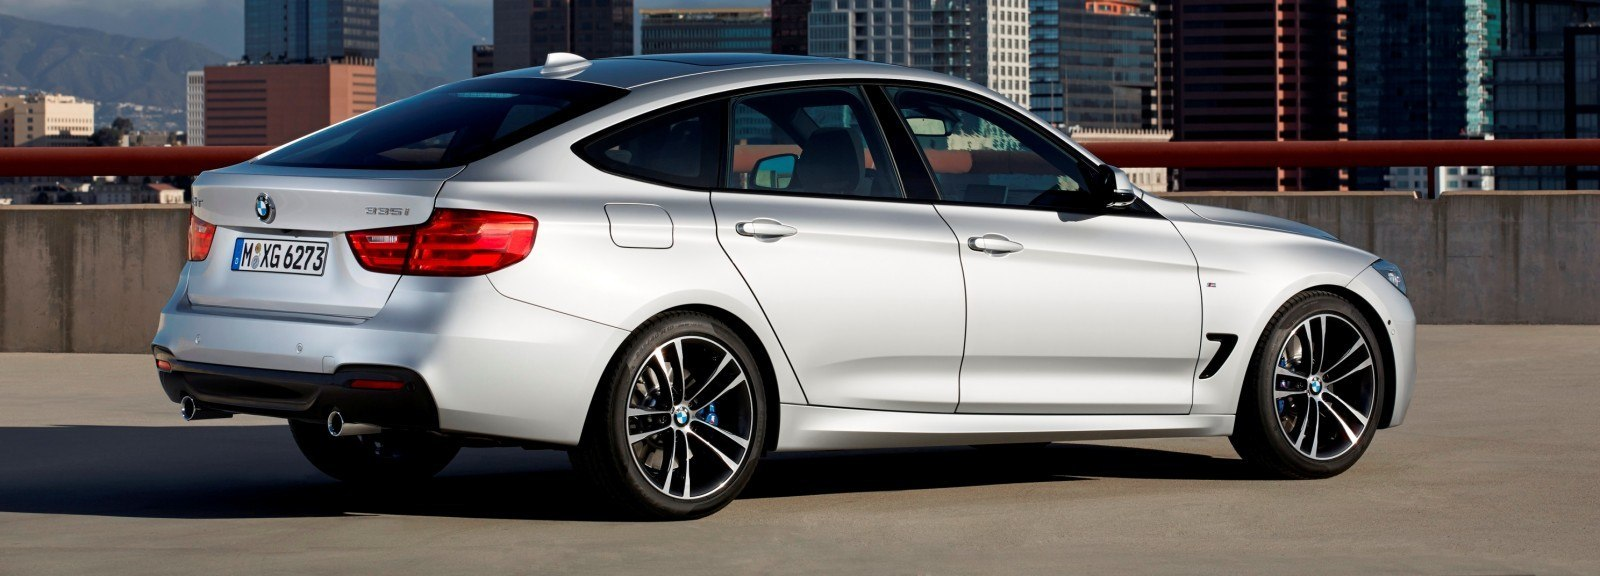 Best of Awards - 1000 miles at 100MPH - 2014 M Sport BMW 335i GT 65